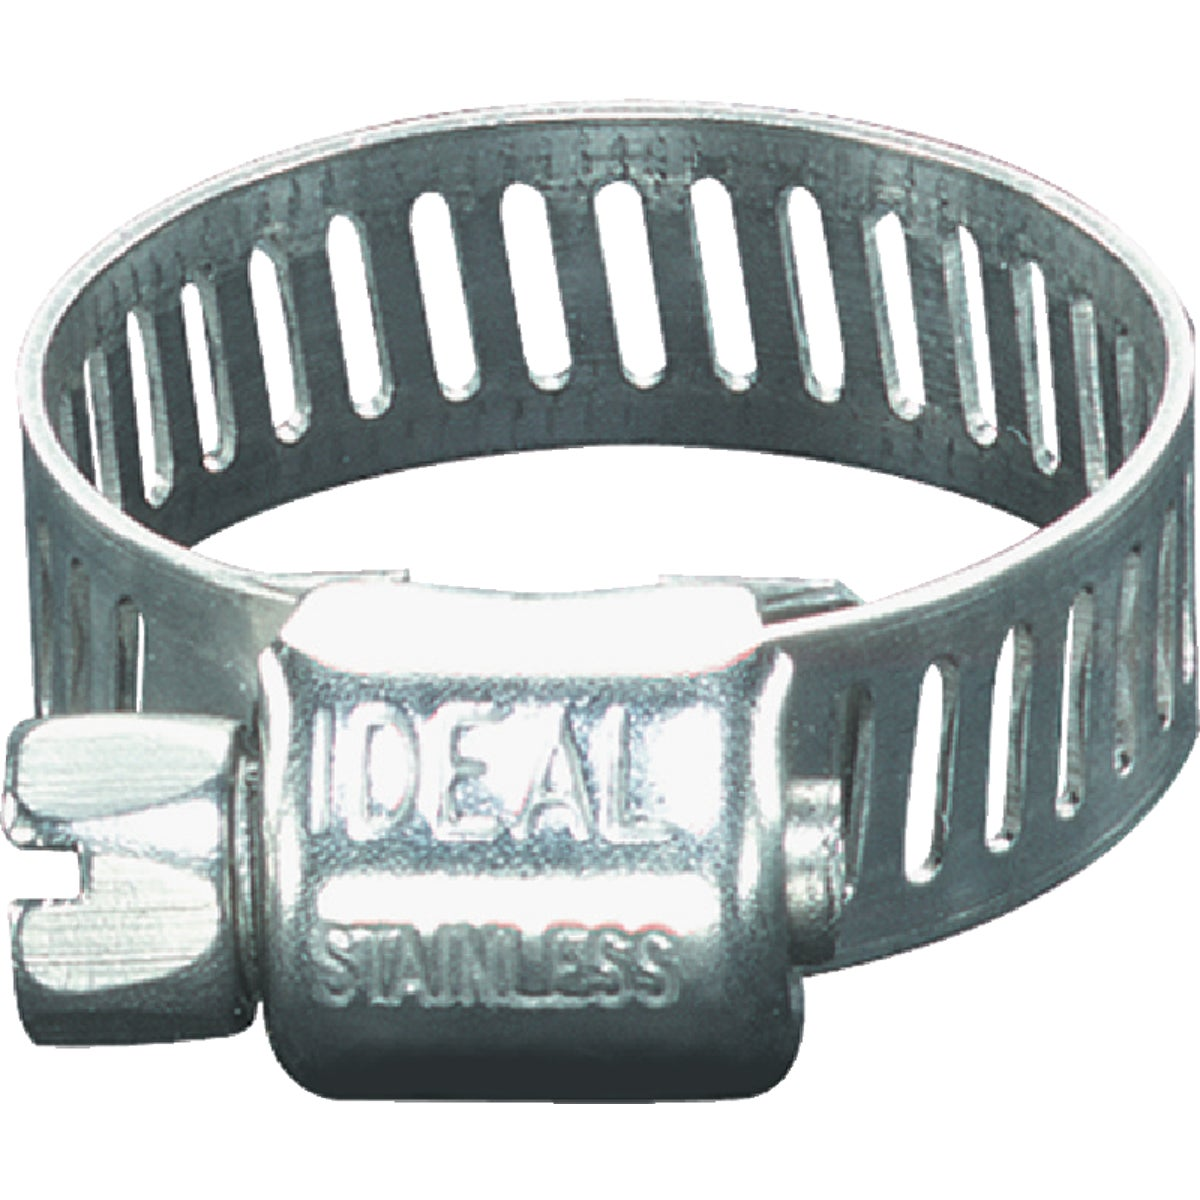 Ideal Corp. 1/4-5/8 CLAMP 6204053